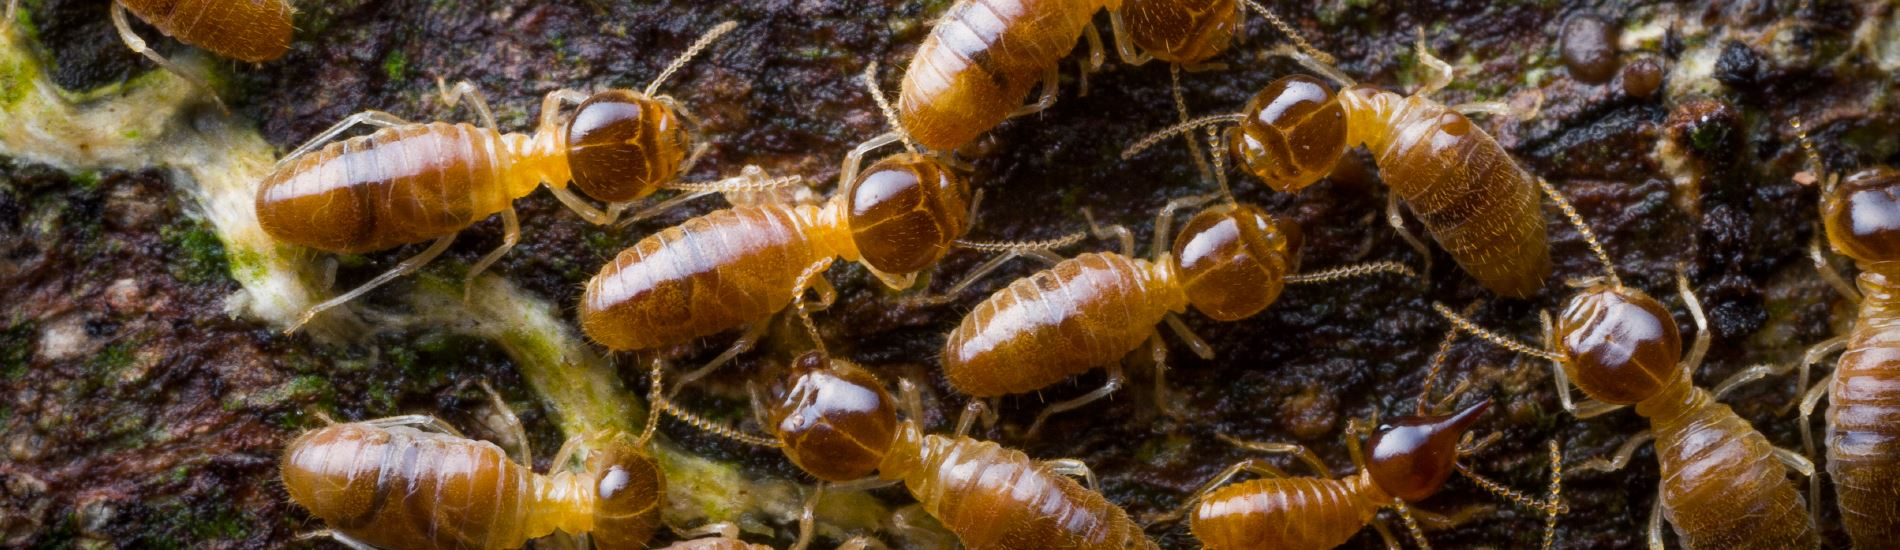 a collection of termites